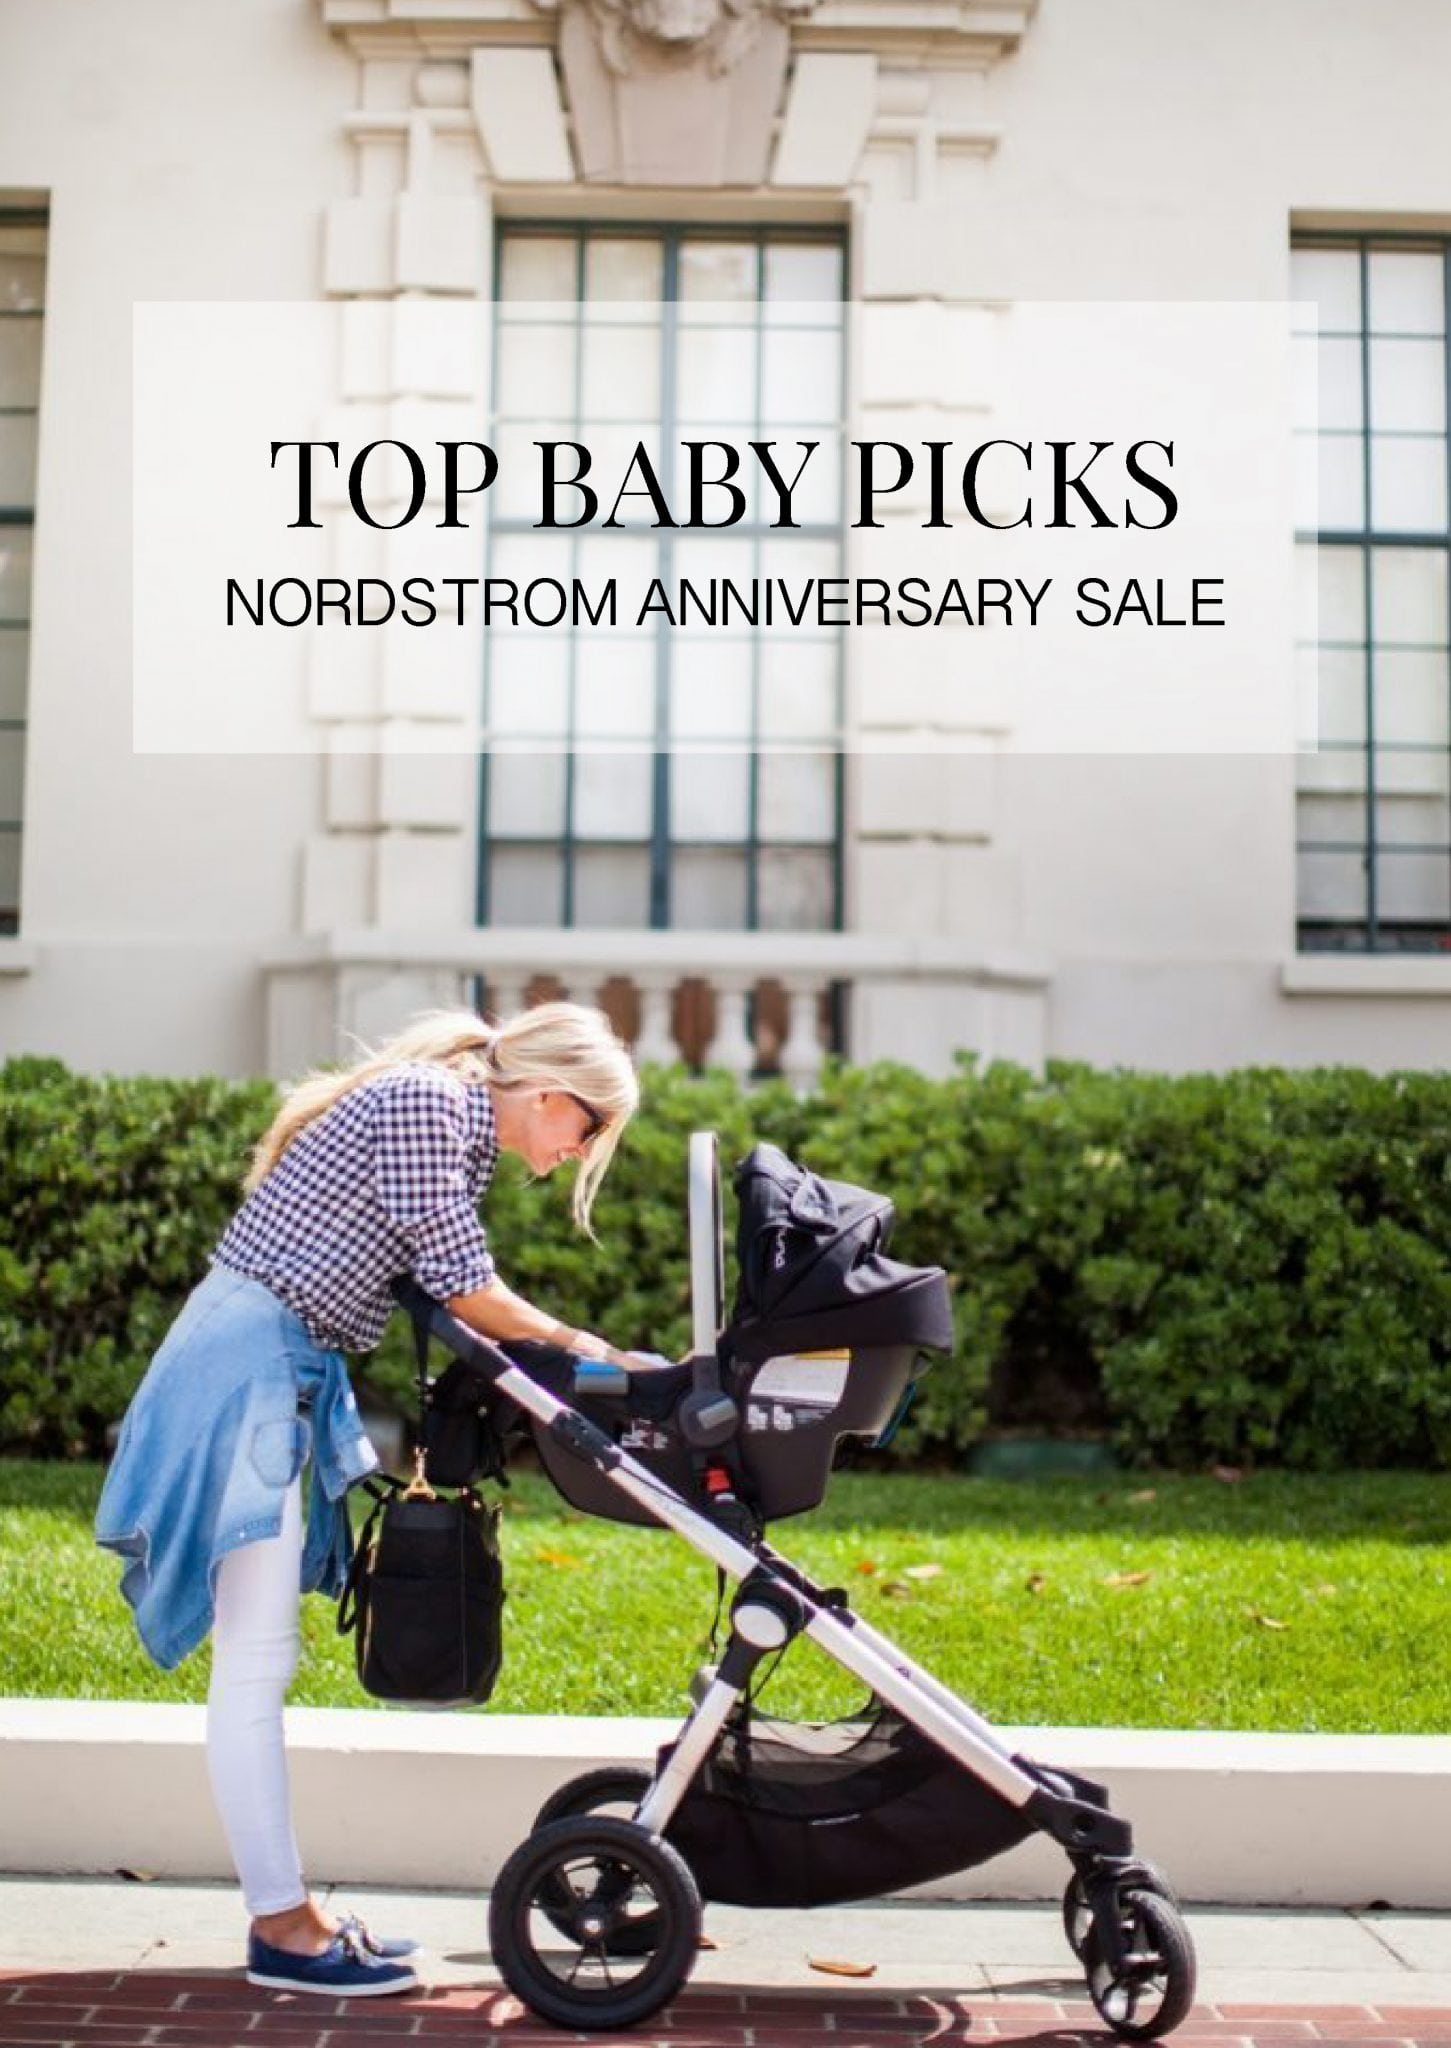 MY TOP BABY PICKS FROM THE NORDSTROM ANNIVERSARY SALE